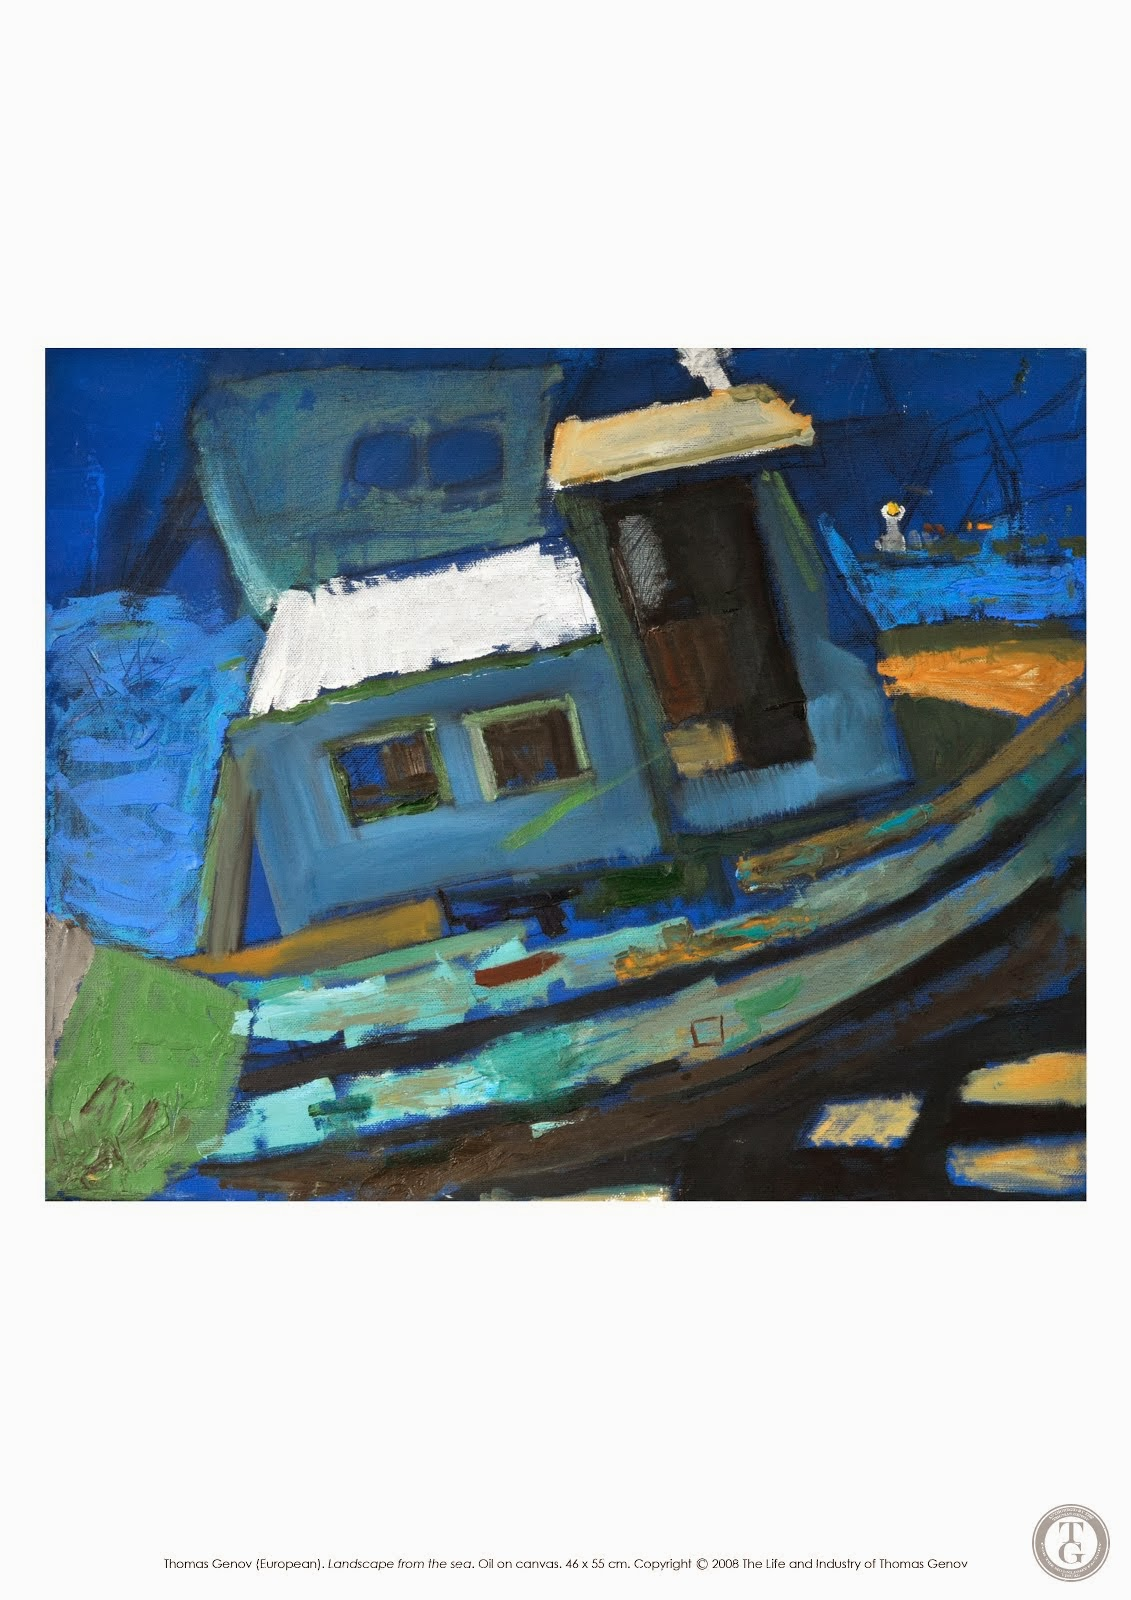 La Mer IV,Oil on canvas, 46X55 cm, Planner in Nesebar, 2003